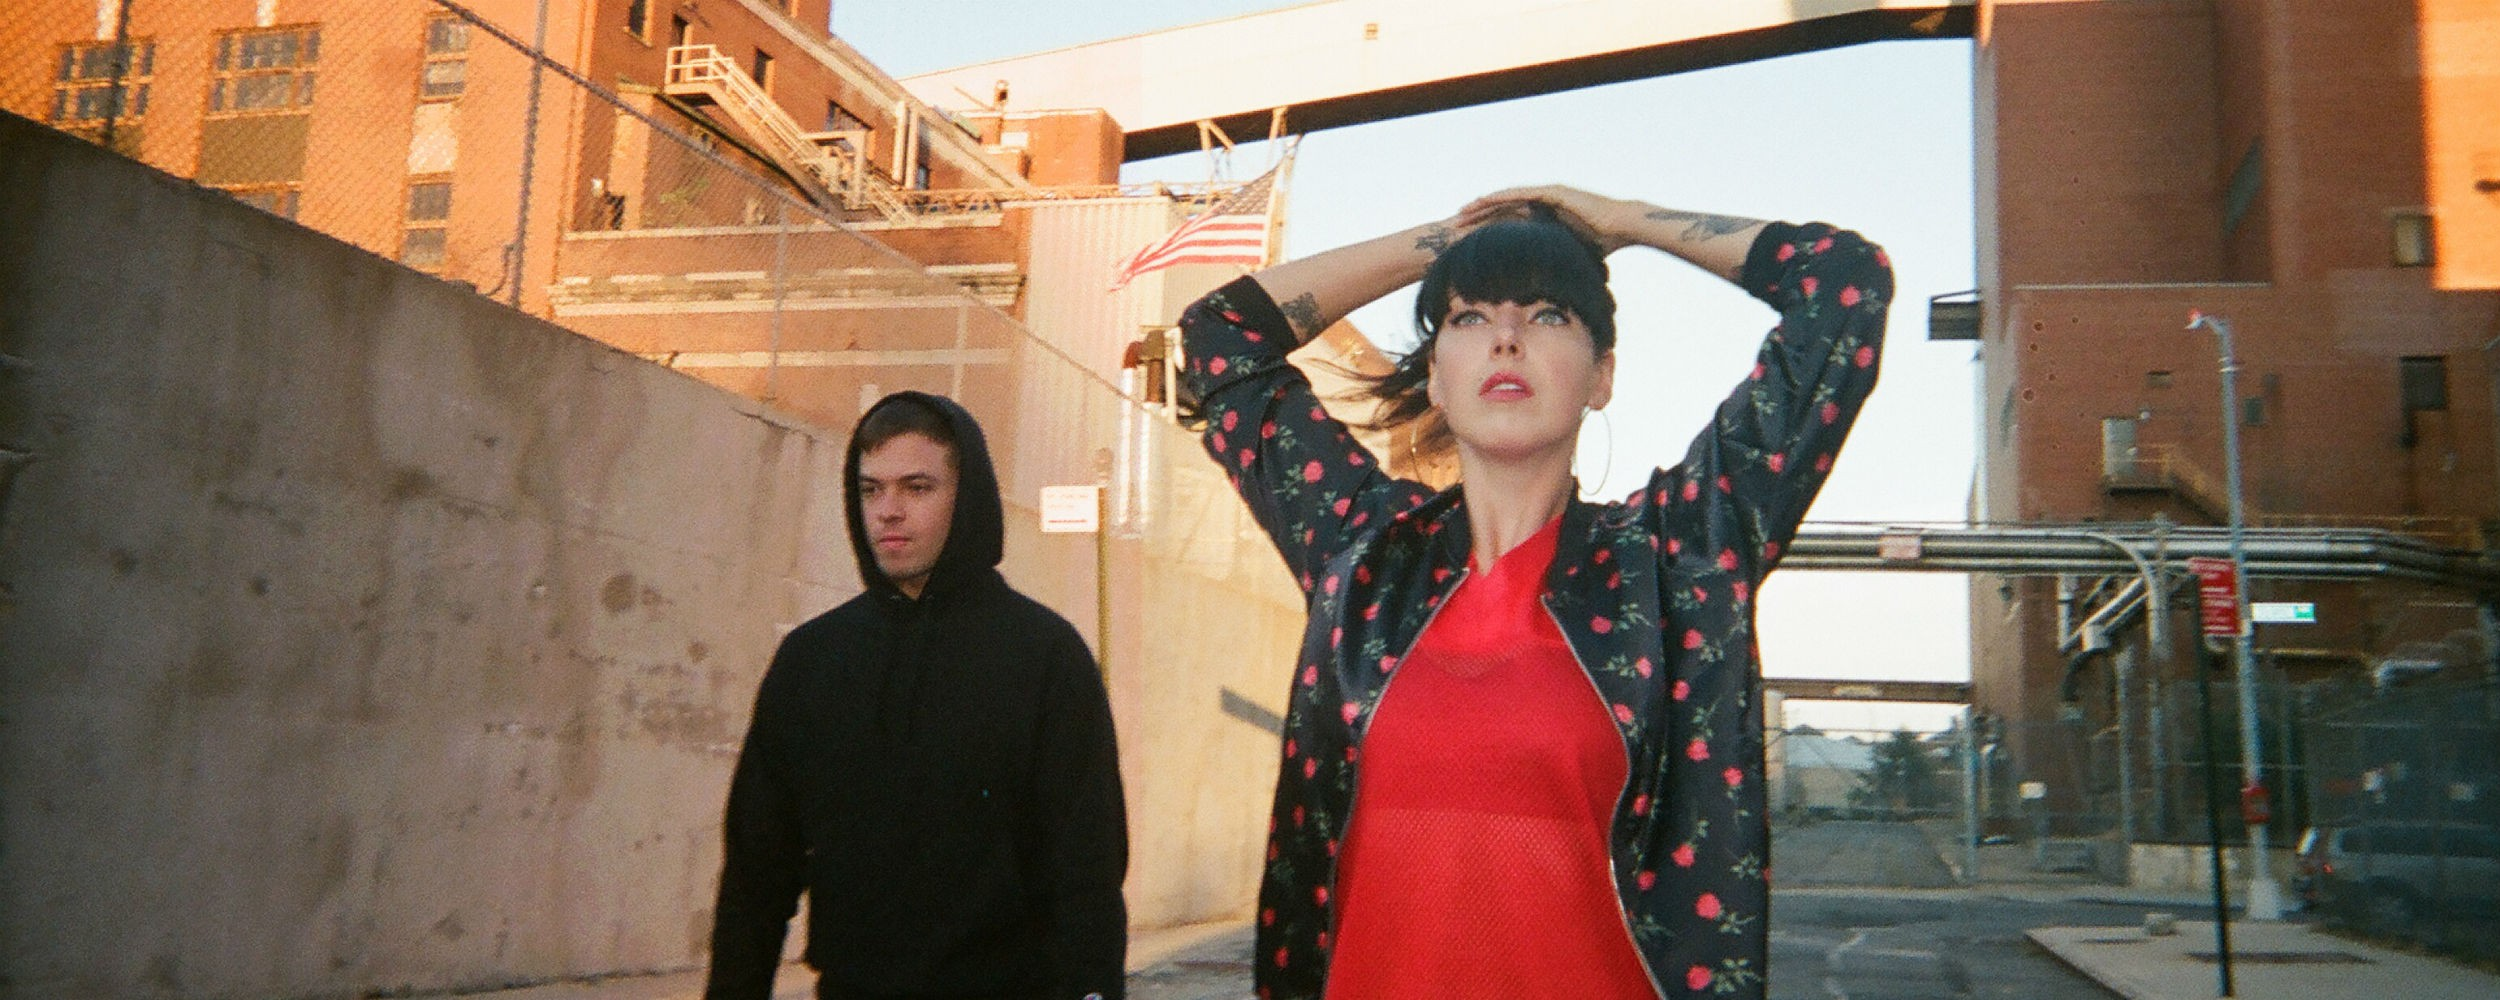 Q&#038;A: Sleigh Bells Have No Illusions About Their Difficult New Album, <em>Jessica Rabbit</em>